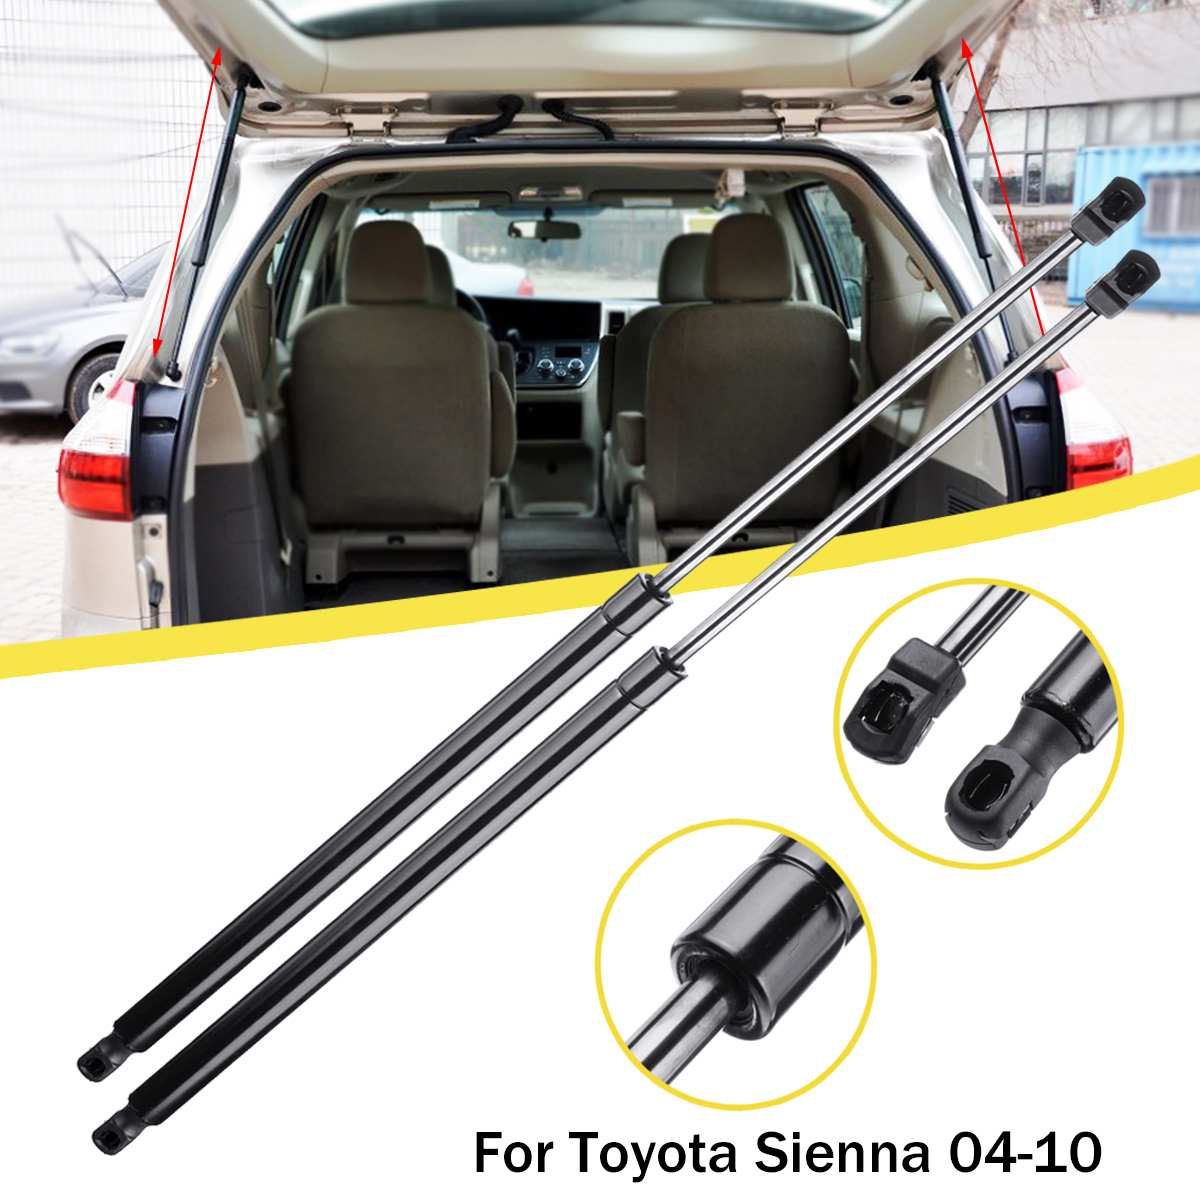 2 New Trunk Lift Supports Struts Props Rods Arms Volvo 940 1991-1995